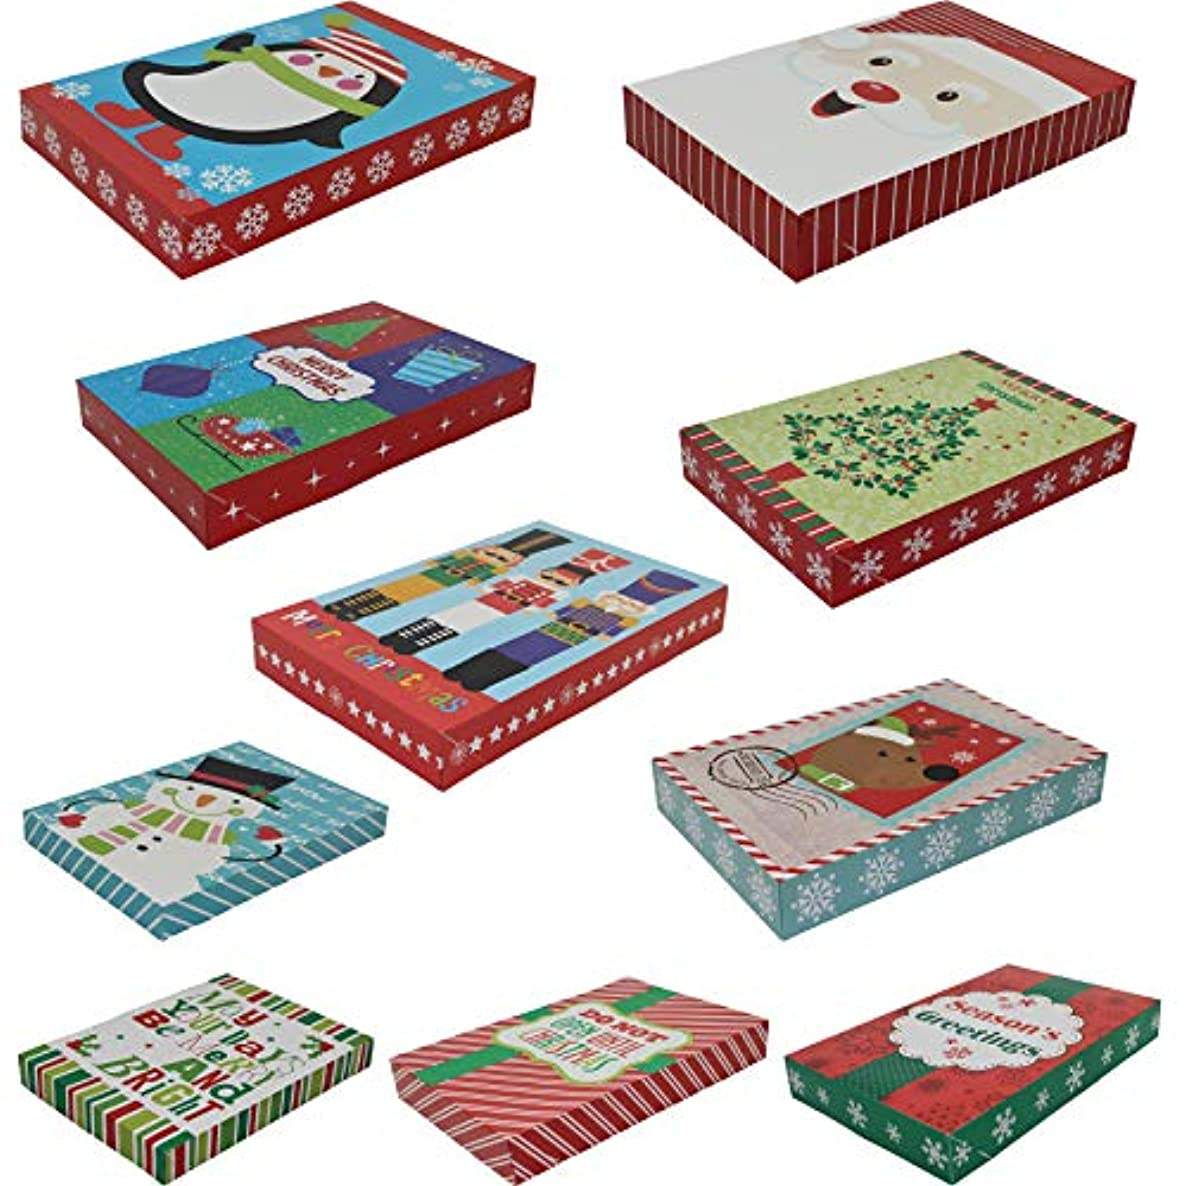 Pack of 10 Christmas Gift Boxes in Assorted Colors and Sizes